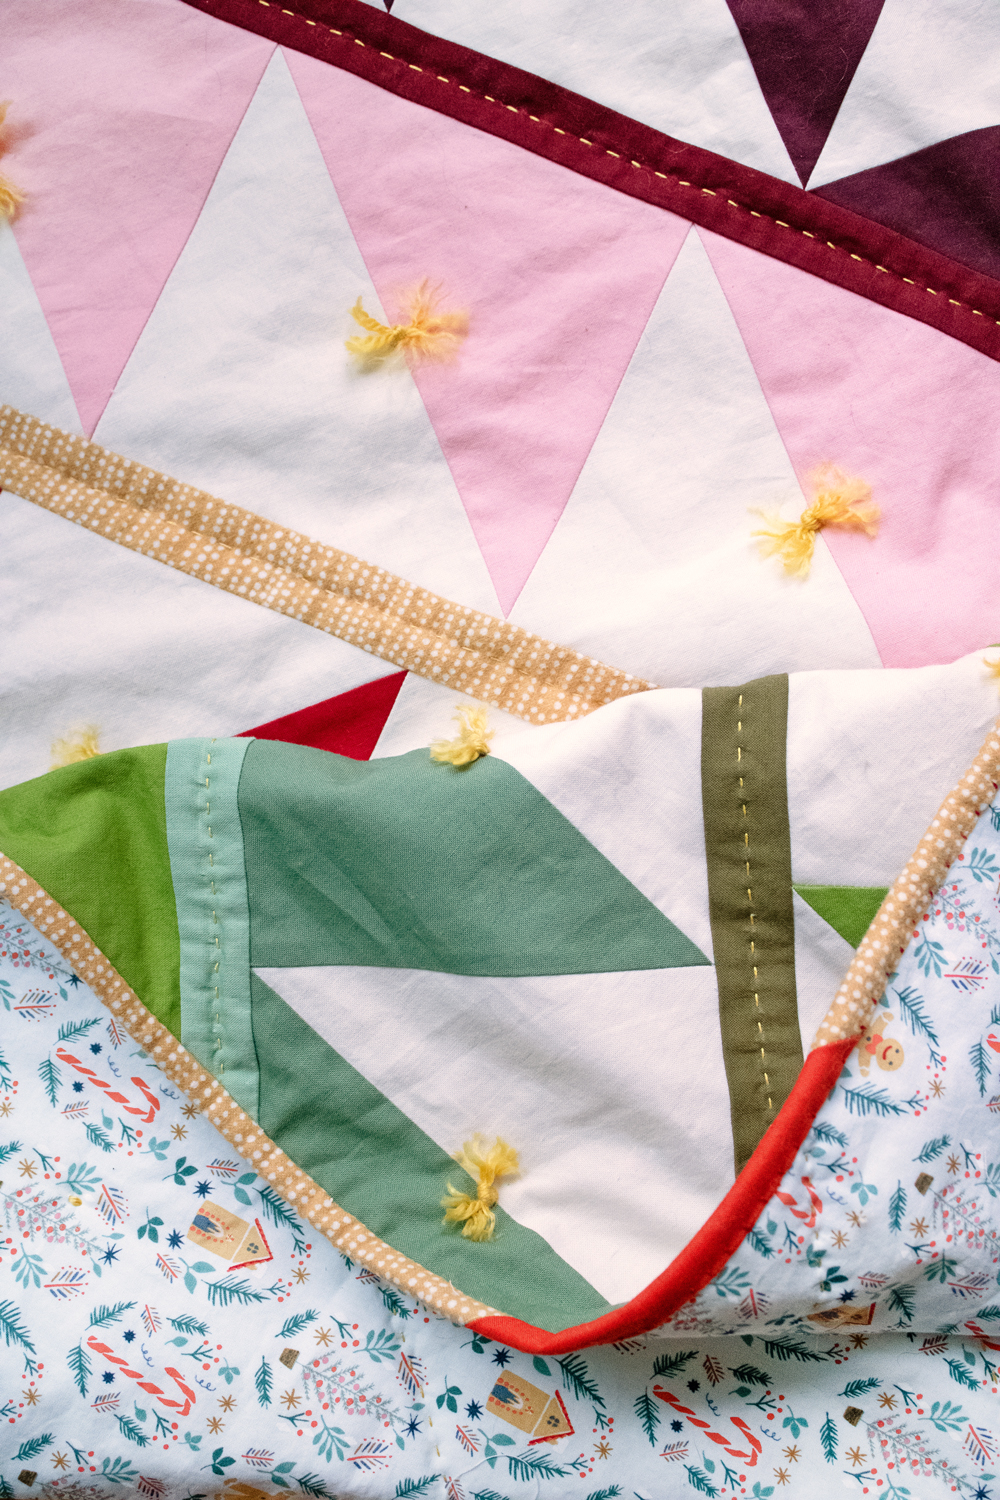 This quilt tying tutorial shows how to tie a quilt with yarn or embroidery thread. Quilt ties is an easy and fast way to finish a quilt. suzyquilts.com #quilting #quiltties